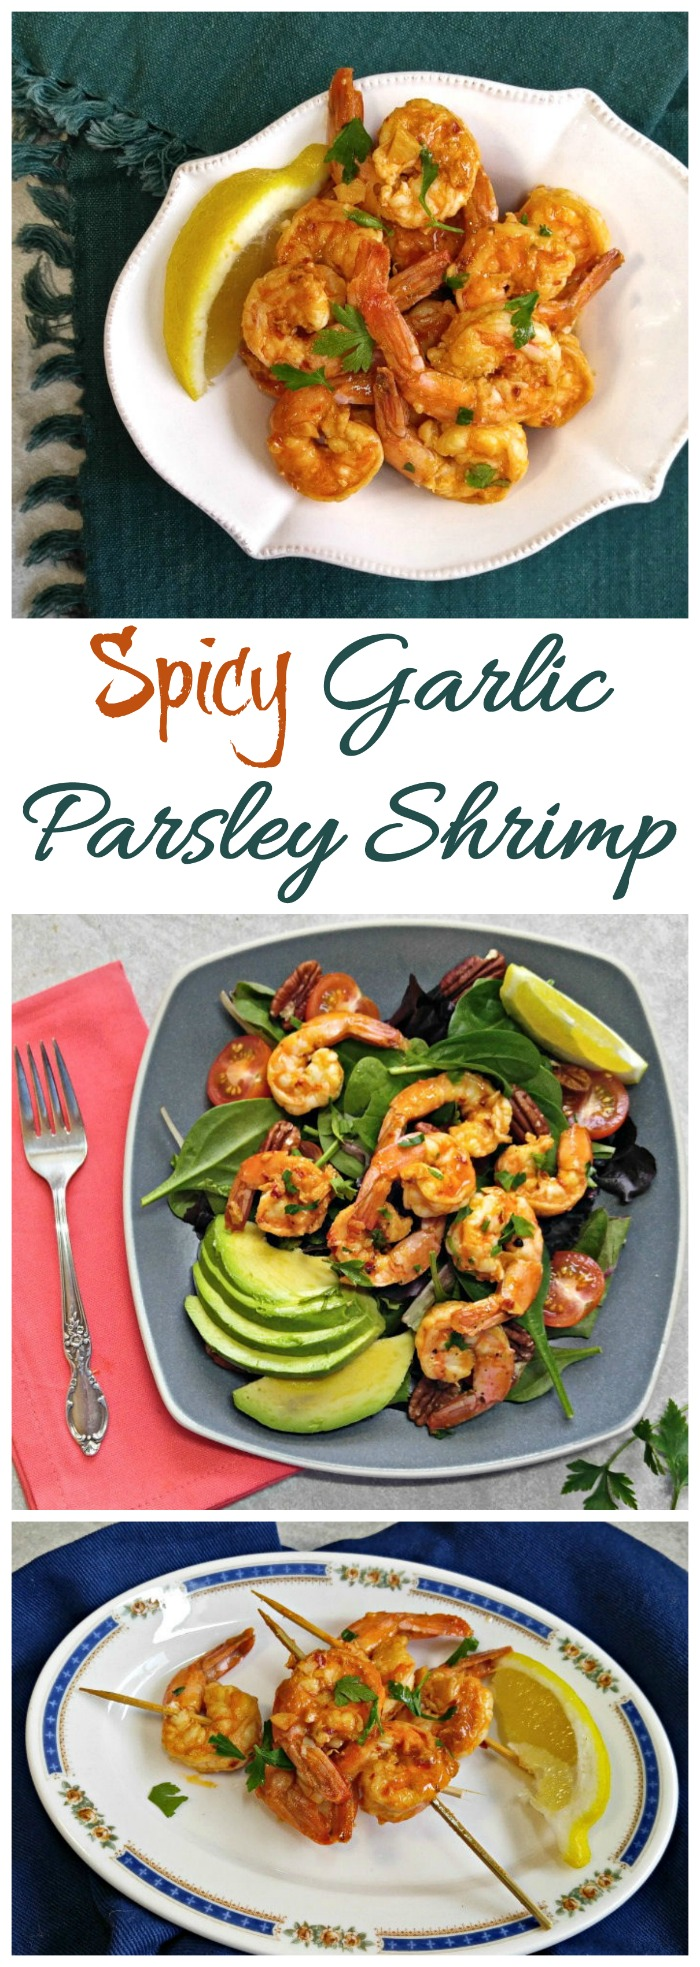 This spicy garlic parsley shrimp is perfect for salads, appetizers and as a main course. It is Who9le30, Paleo and gluten free. #garlicshrimp #spicyshrimp